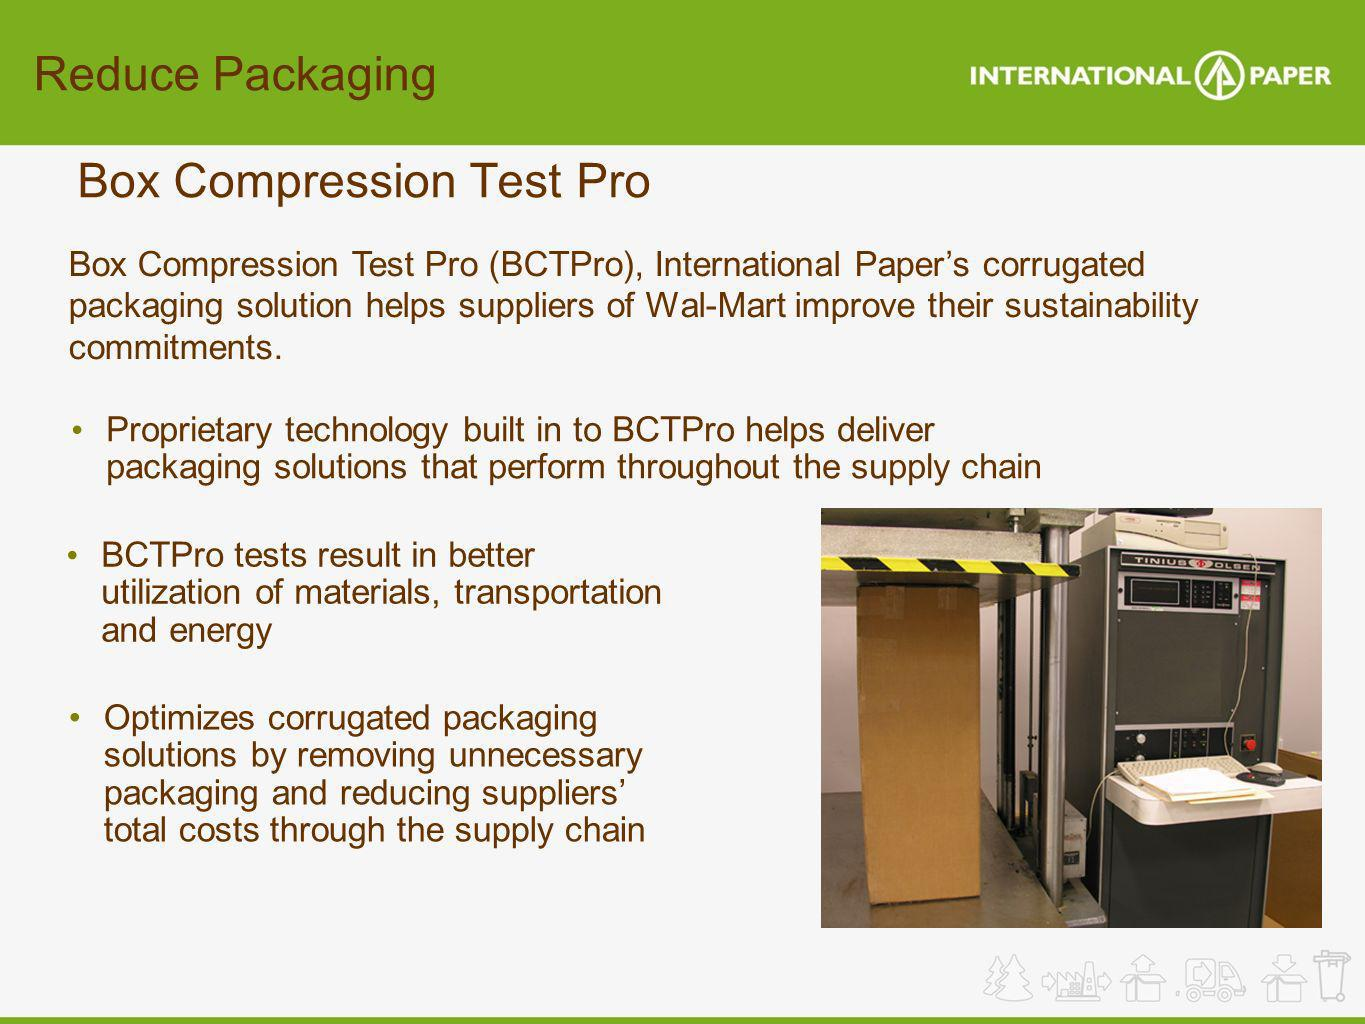 Reduce Packaging Box Compression Test Pro Optimizes corrugated packaging solutions by removing unnecessary packaging and reducing suppliers total cost